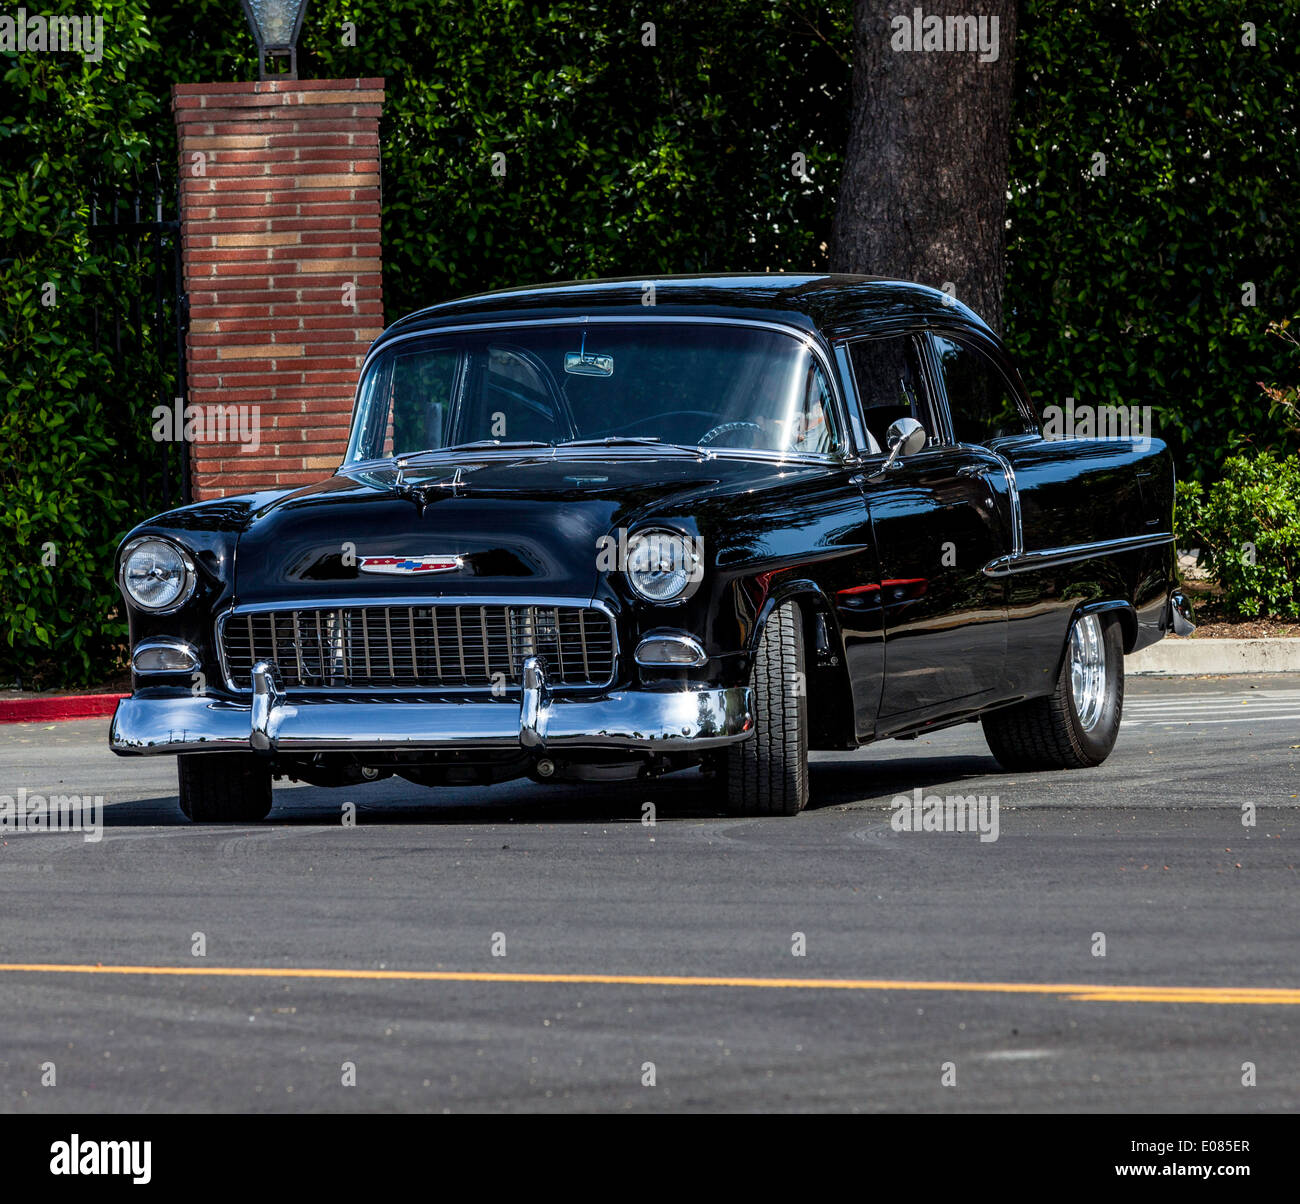 Tattoo Collector Stock Photos Images Alamy 1955 Chevy 2 Door Sedan For Sale A Image